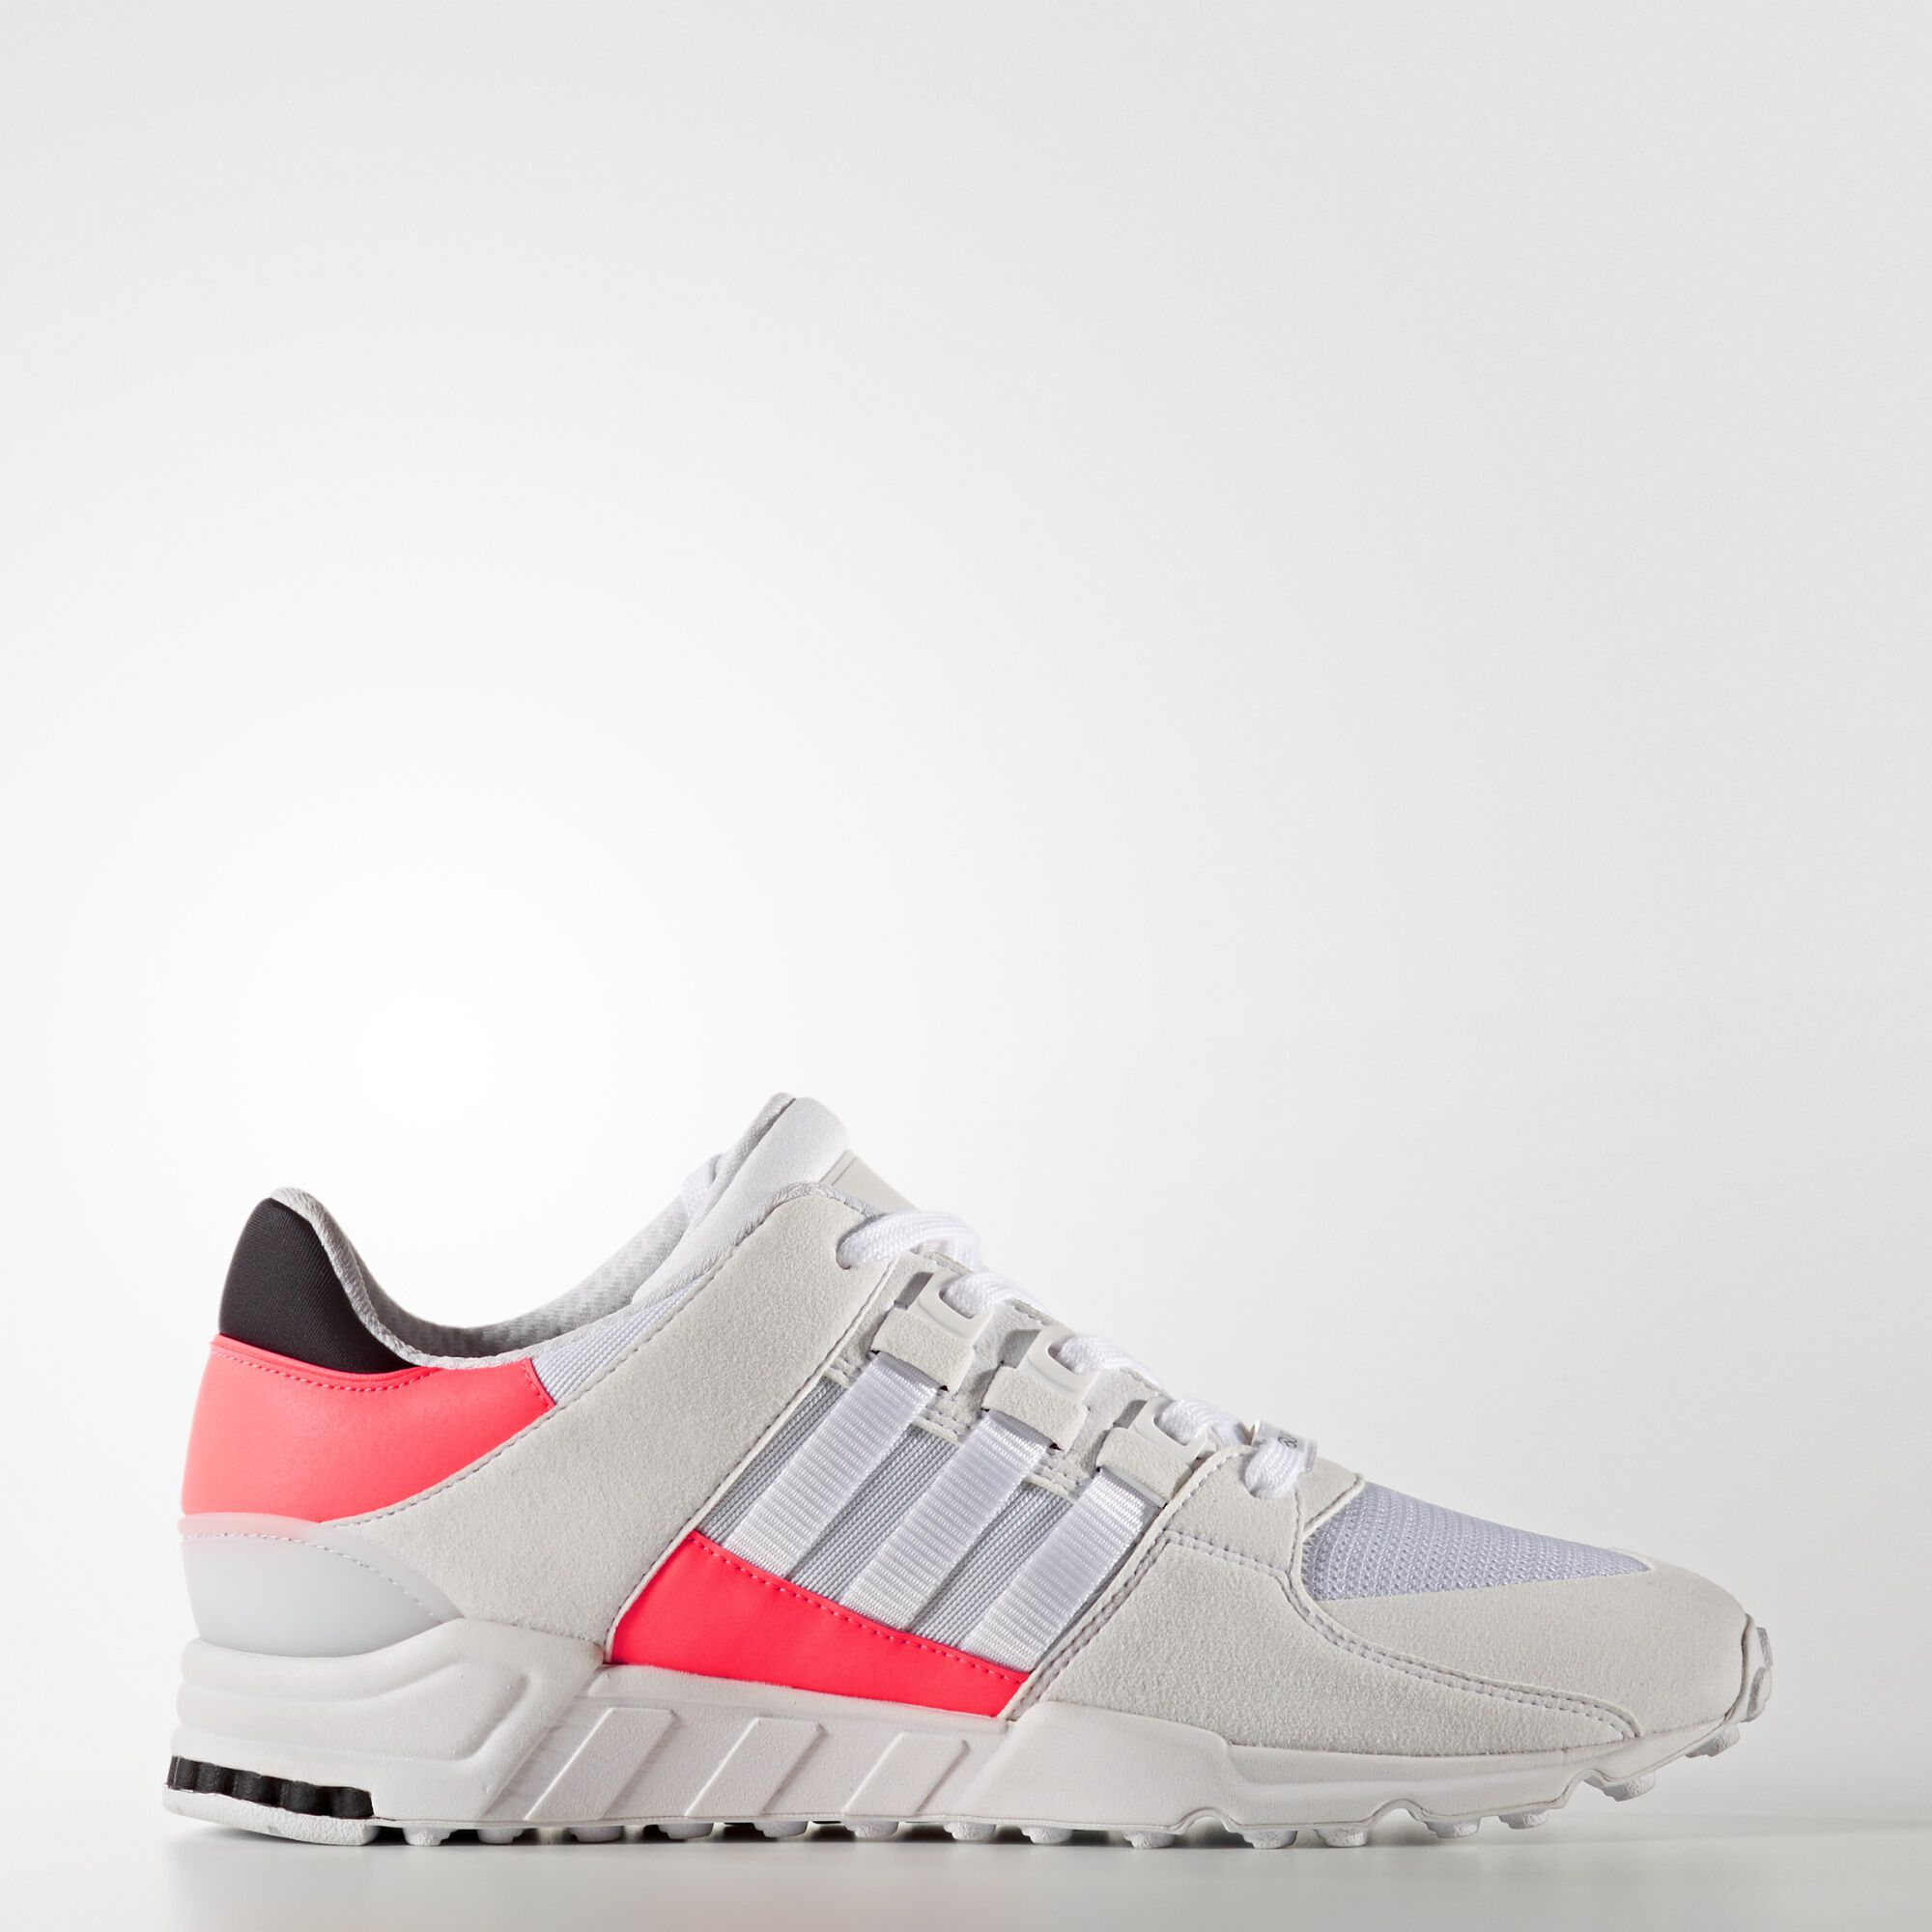 the best attitude 1cab8 9ab10 Black And White Colorways Of The adidas EQT Support 93 16 Bo